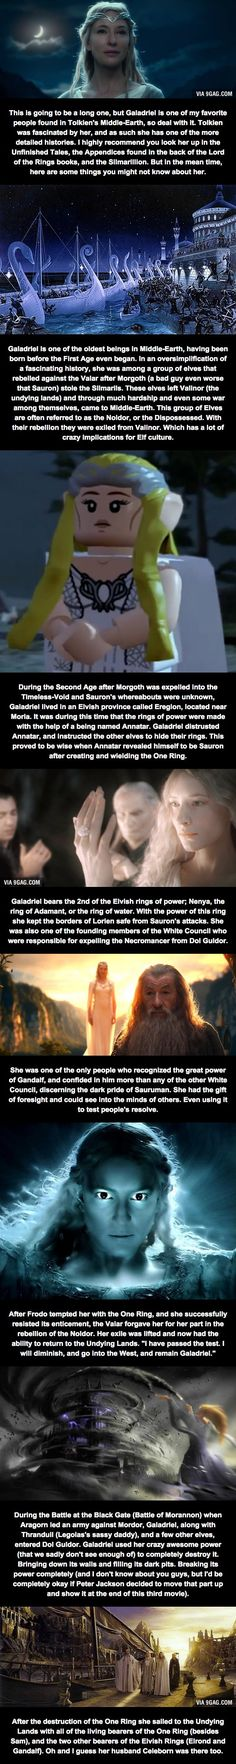 Relatively Unknown LoTR Facts - Galadriel the Lady of Light